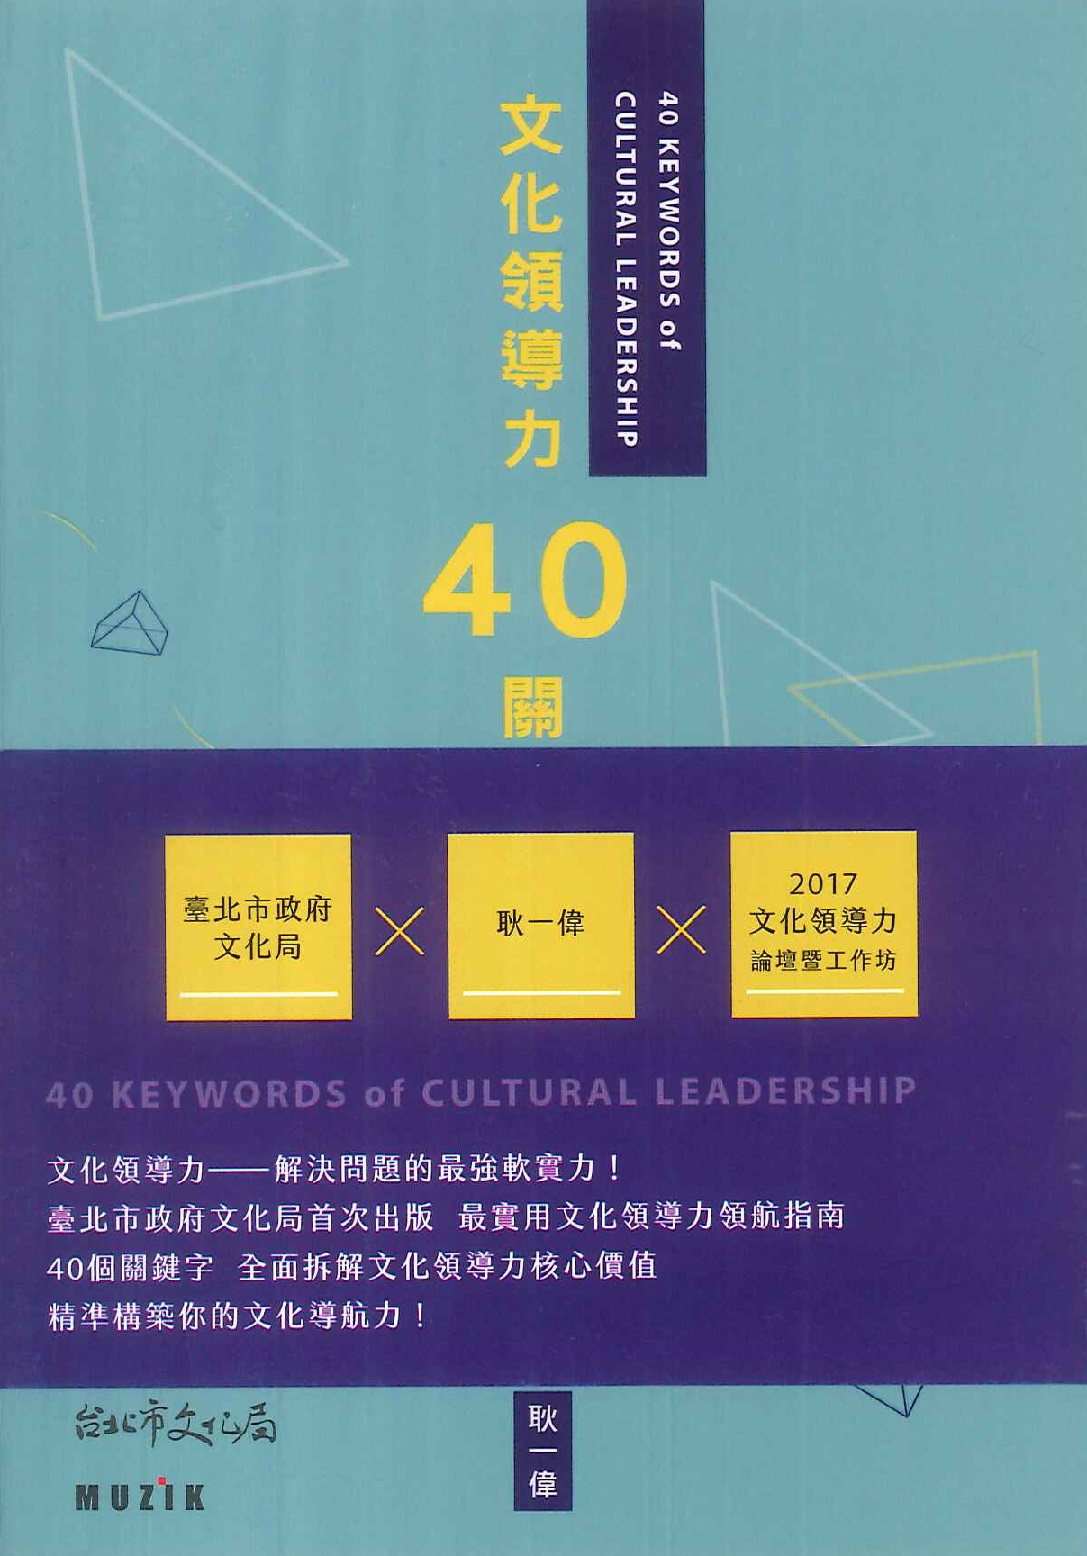 文化領導力40關鍵字=40 keywords of cultural leadership